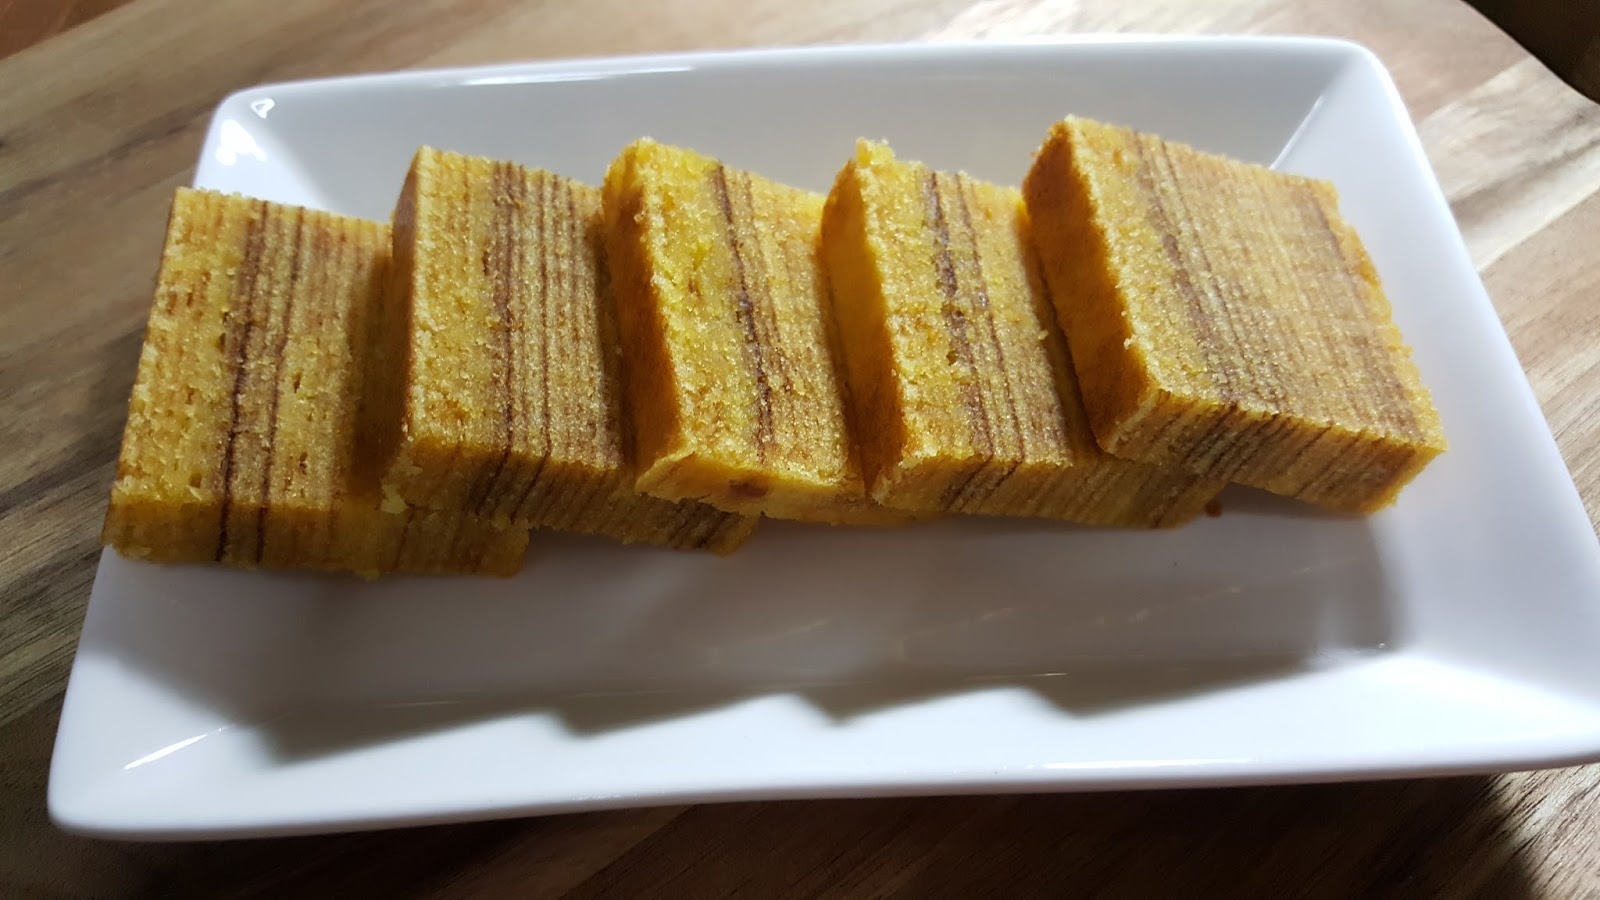 Cempedak Layer Cake Or Kek Lapis A Tasty Clic Every Slice Of This Aromatic You Simply Can T Resist